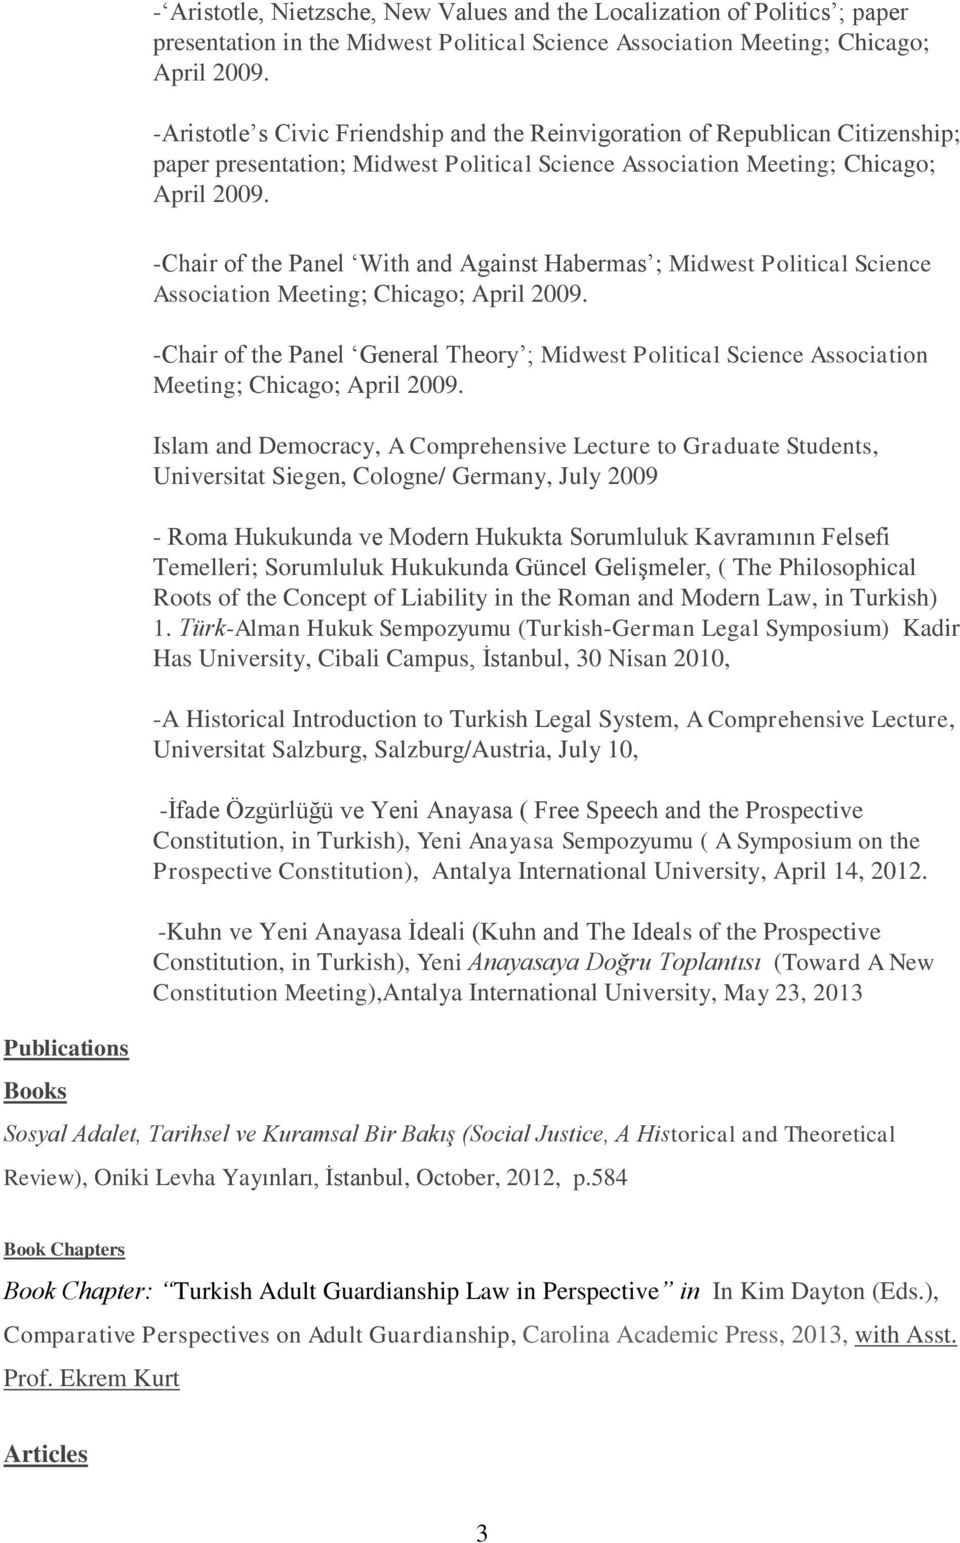 Publications Books -Chair of the Panel With and Against Habermas ; Midwest Political Science Association Meeting; Chicago; April 2009.